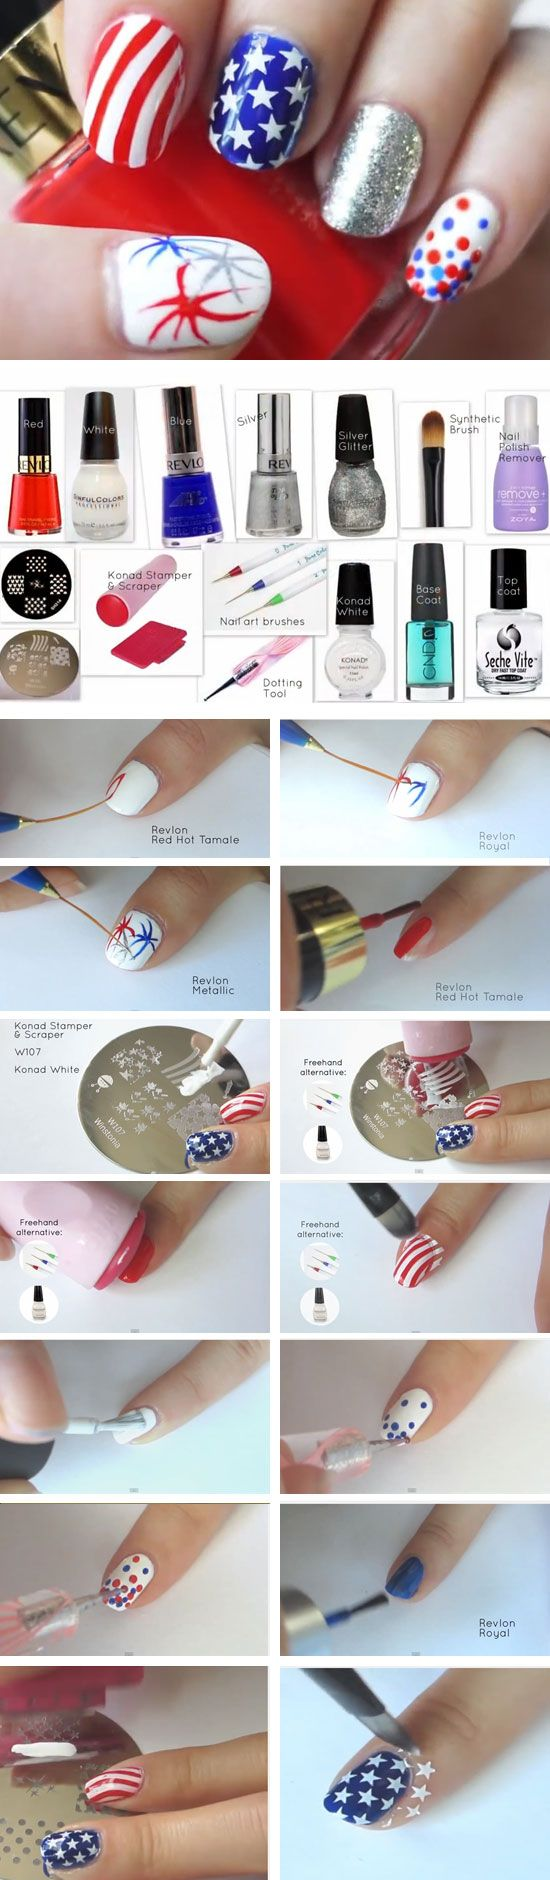 Konad Stamping Fireworks | Click Pic for 17 Easy DIY 4th of July Nail Art Designs for Short Nails | Awesome Nail Art Ideas for Summer Design Fun